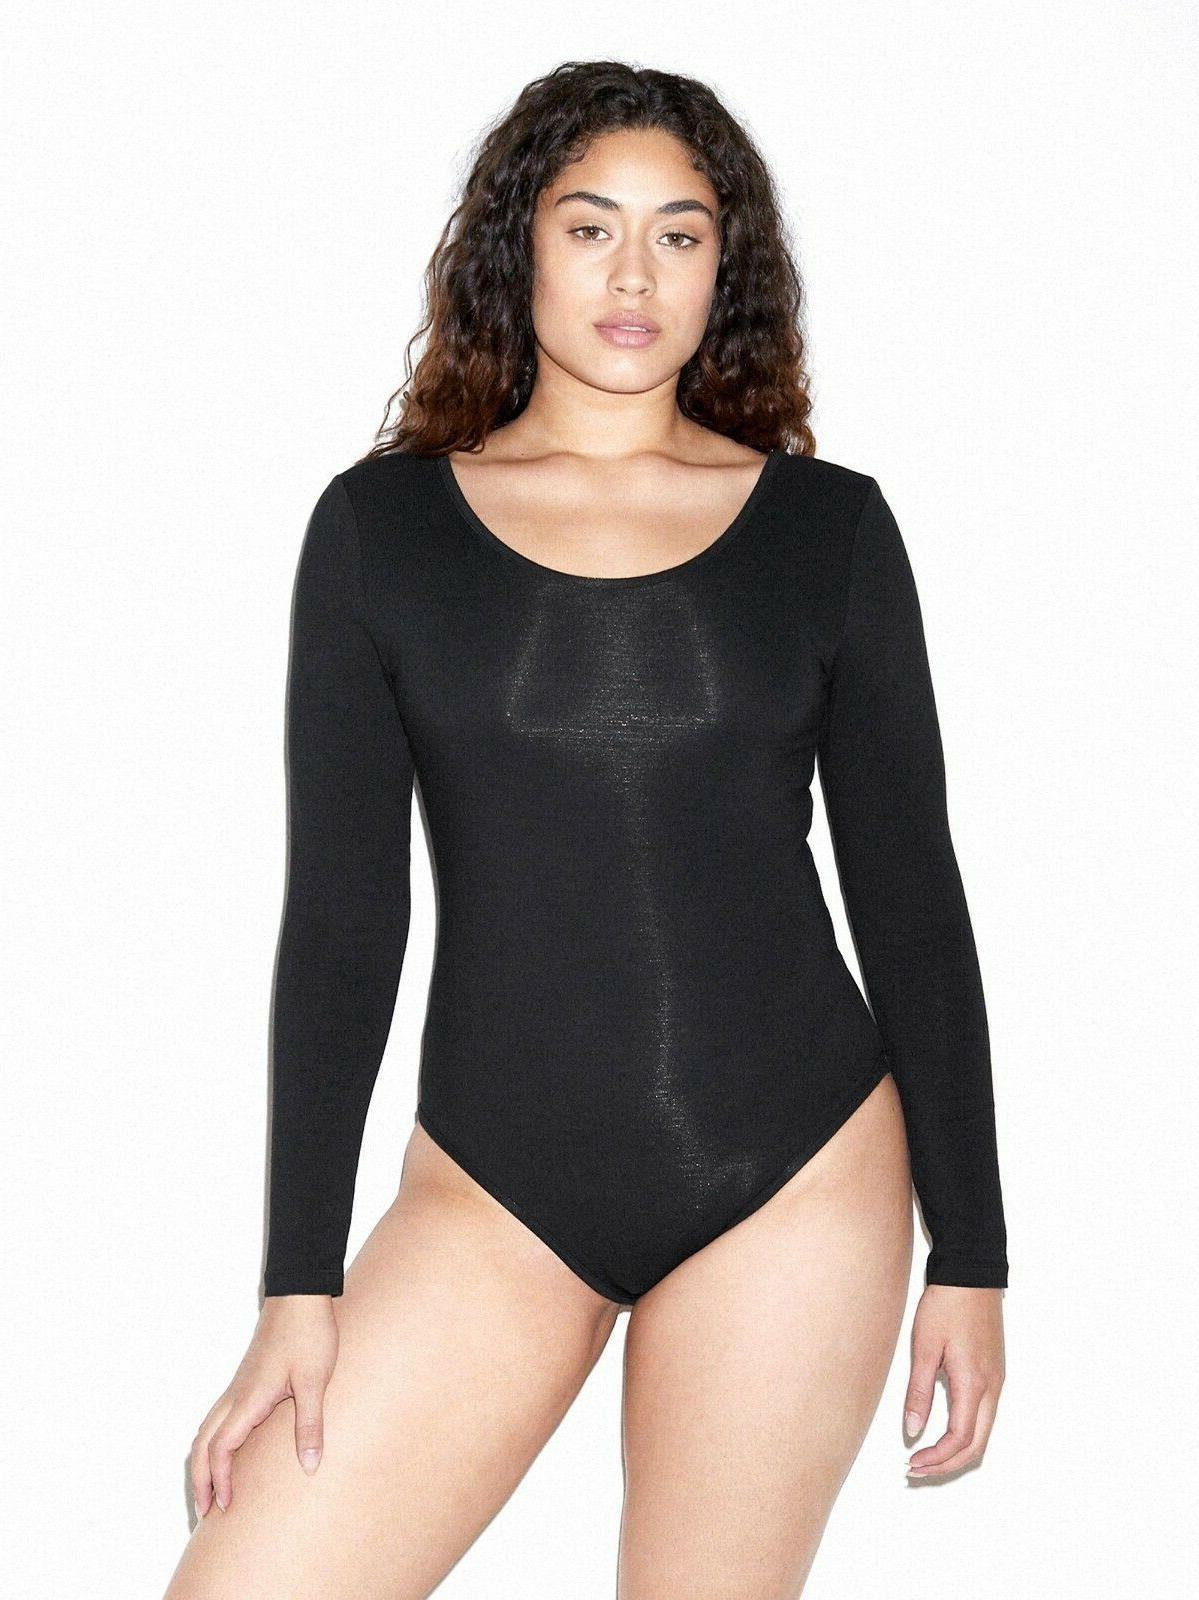 women s black long sleeve bodysuit size